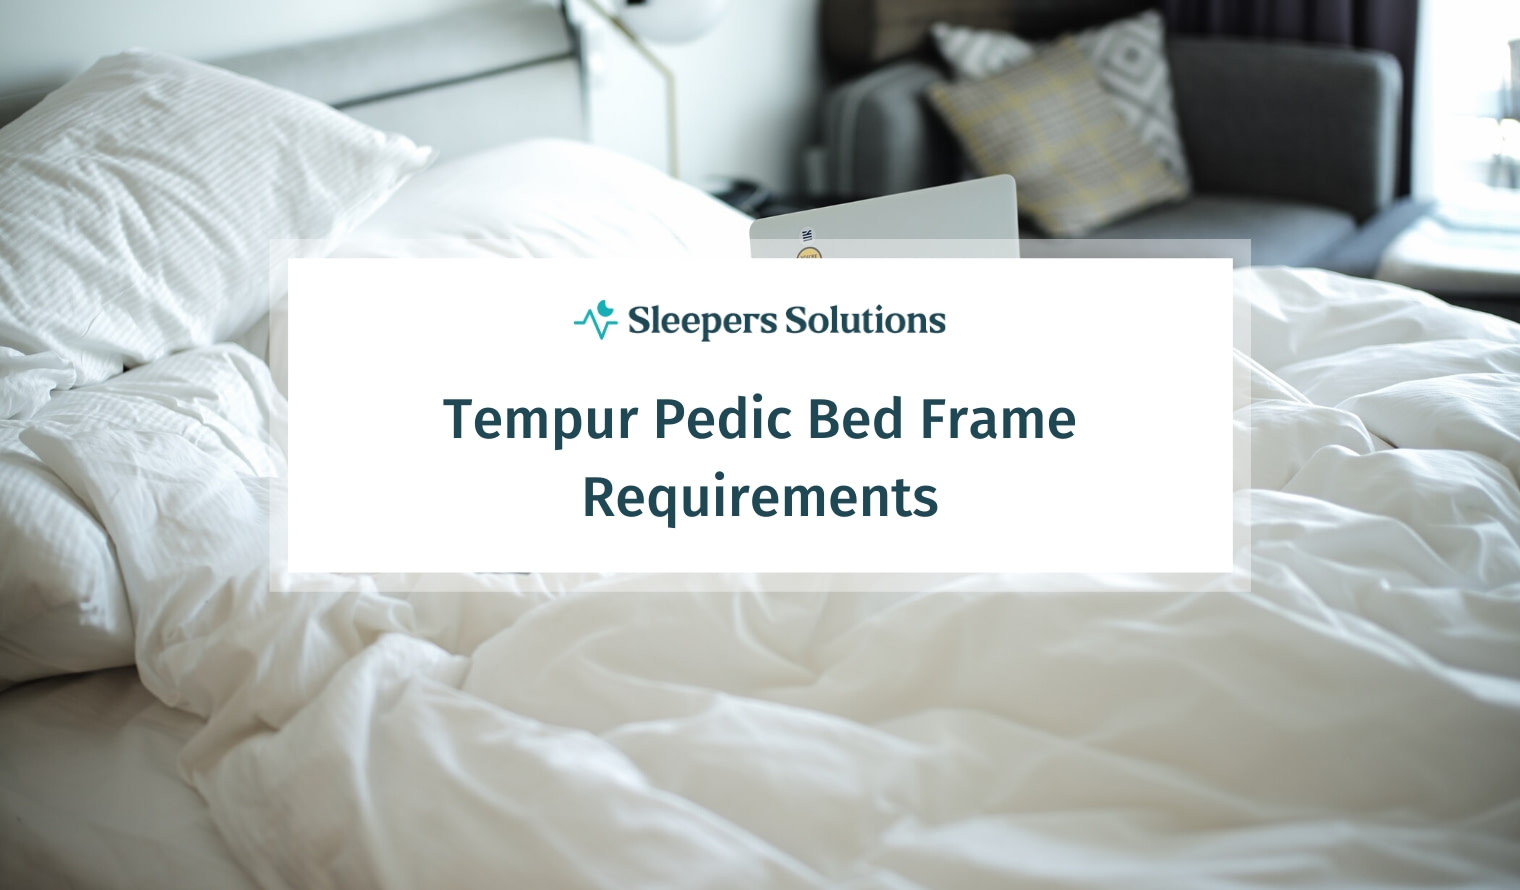 Tempur Pedic Bed Frame Requirements | 2021 Guide